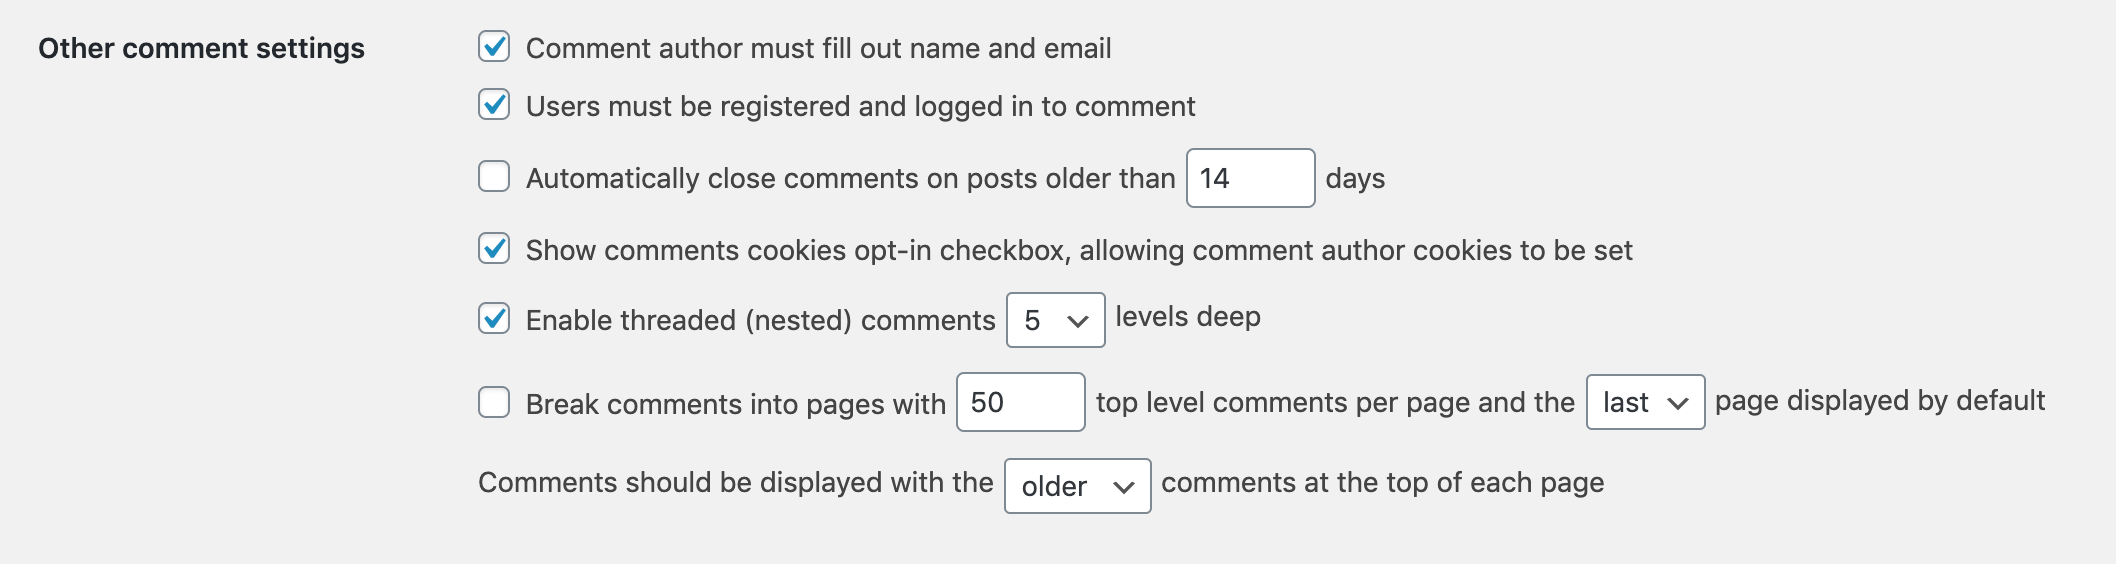 Restricting comments to logged in users in WordPress.